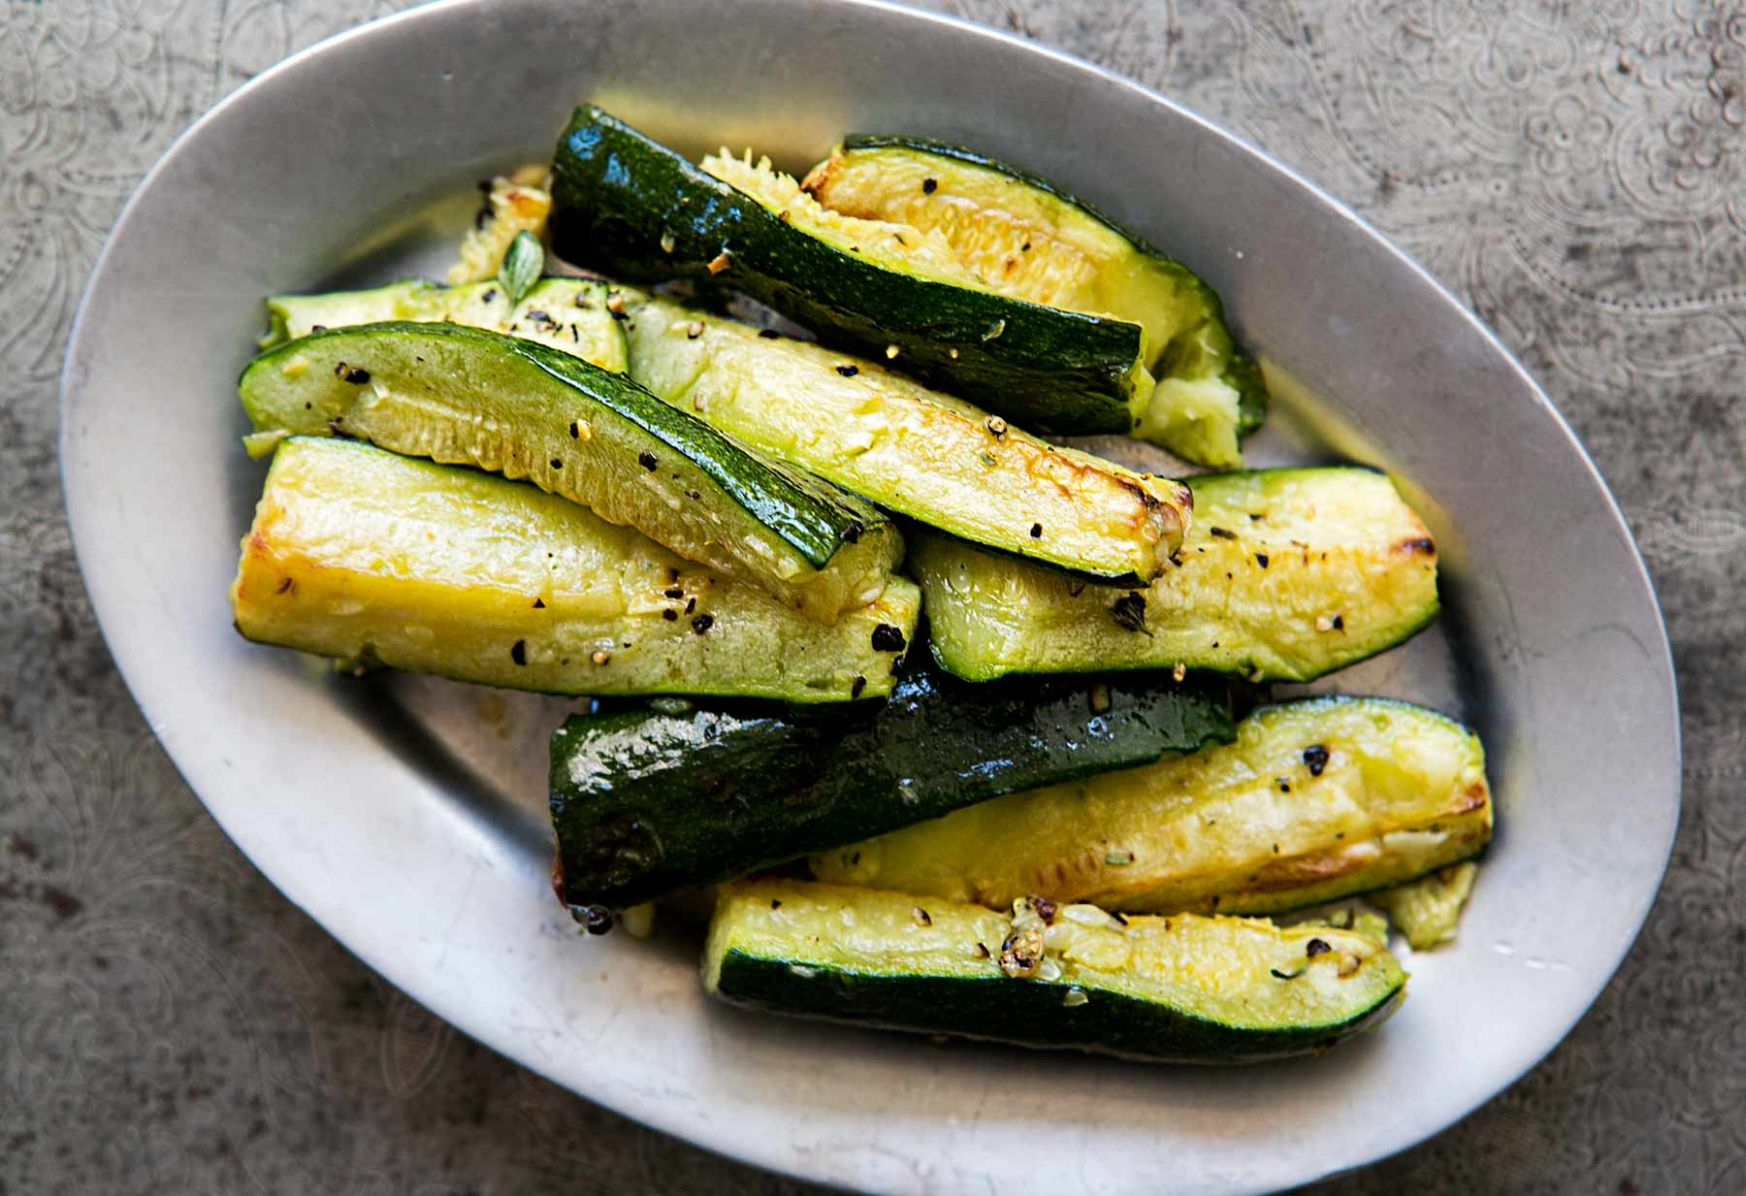 Roasted Zucchini with Garlic - Vegetable Recipes Zucchini